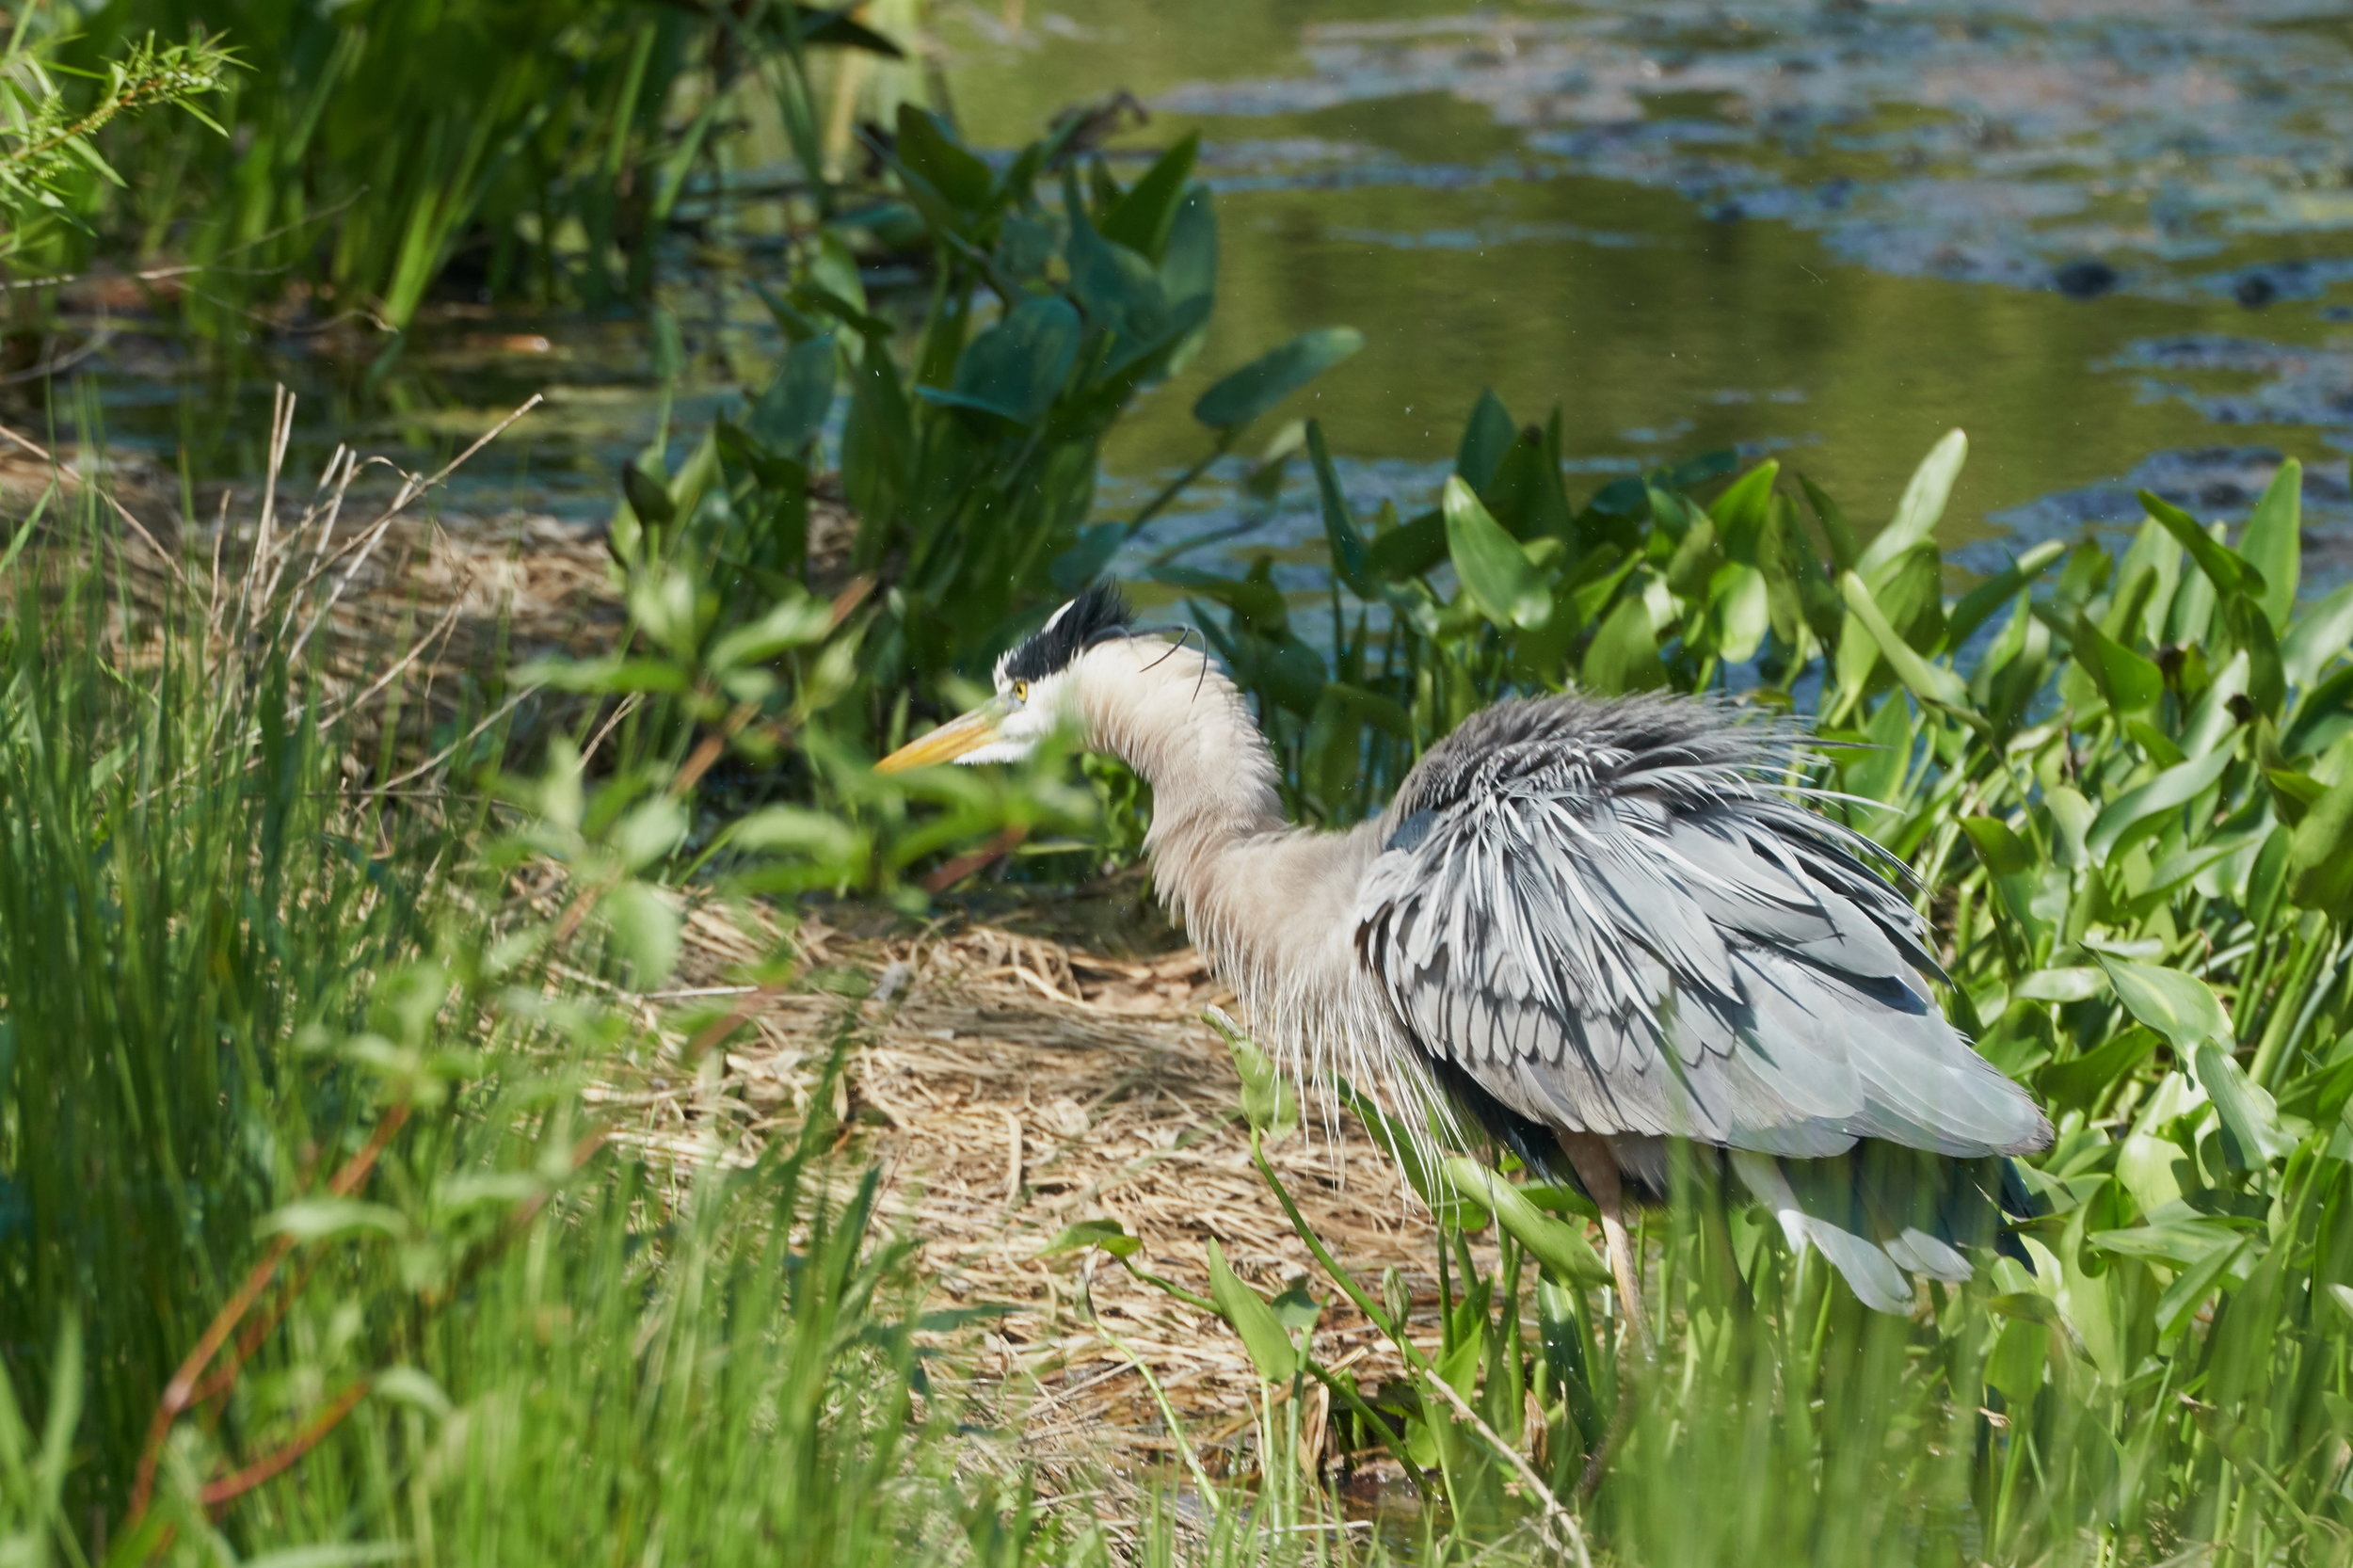 Great blue heron 21 May 09 2018_resize.jpg